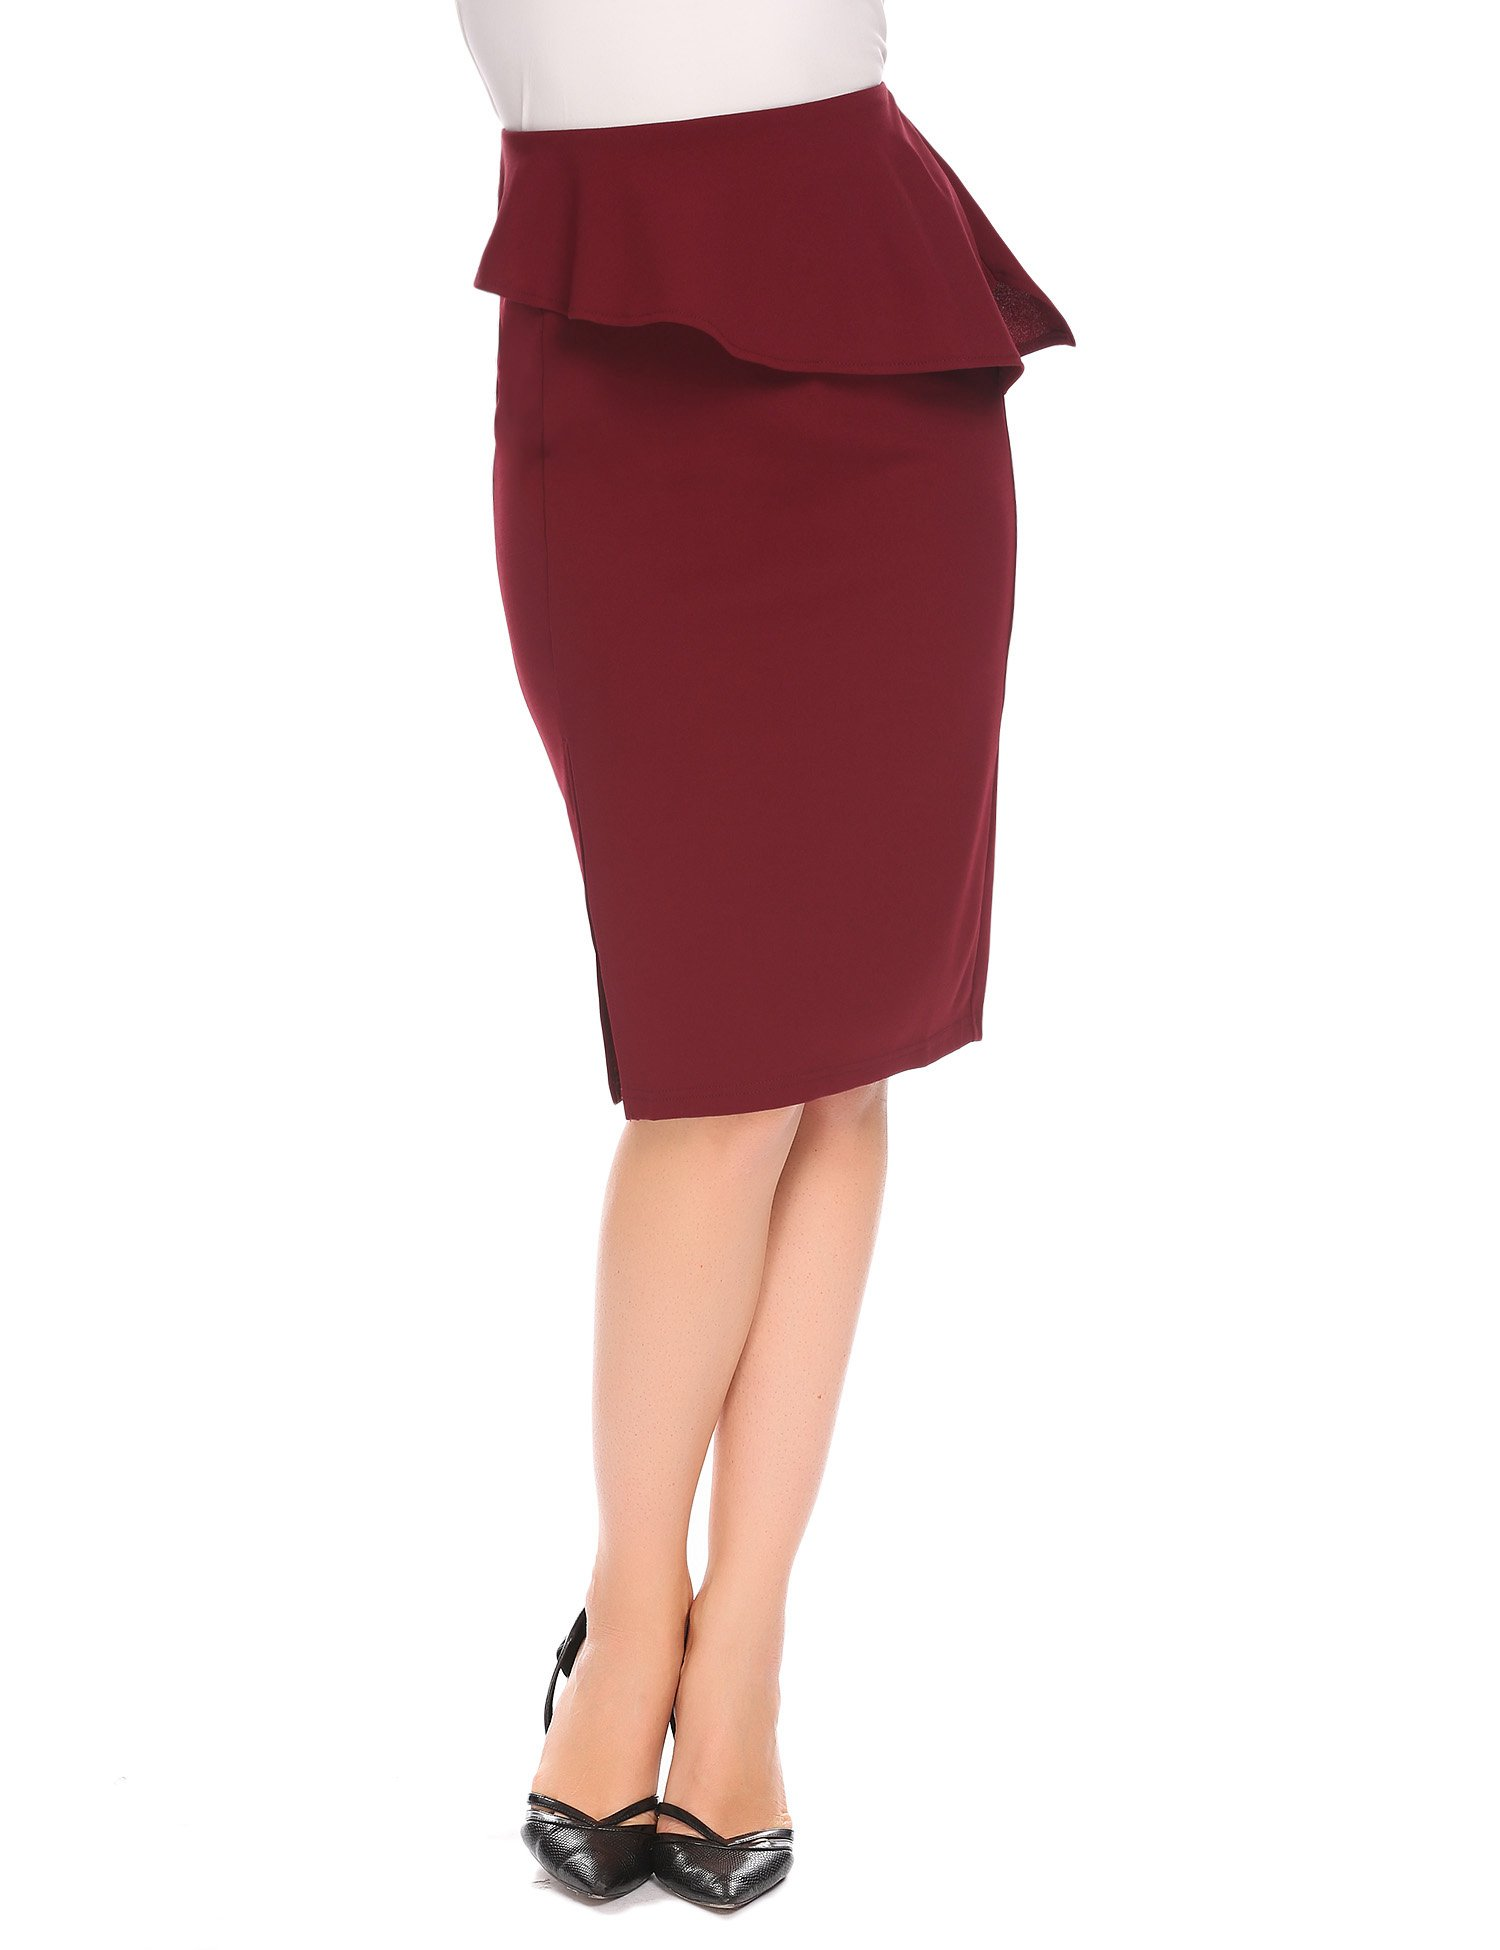 Womens Midi Pencil Skirt Red Elastic High Waist Knee Length Slim Bodycon Slit Office Skirts